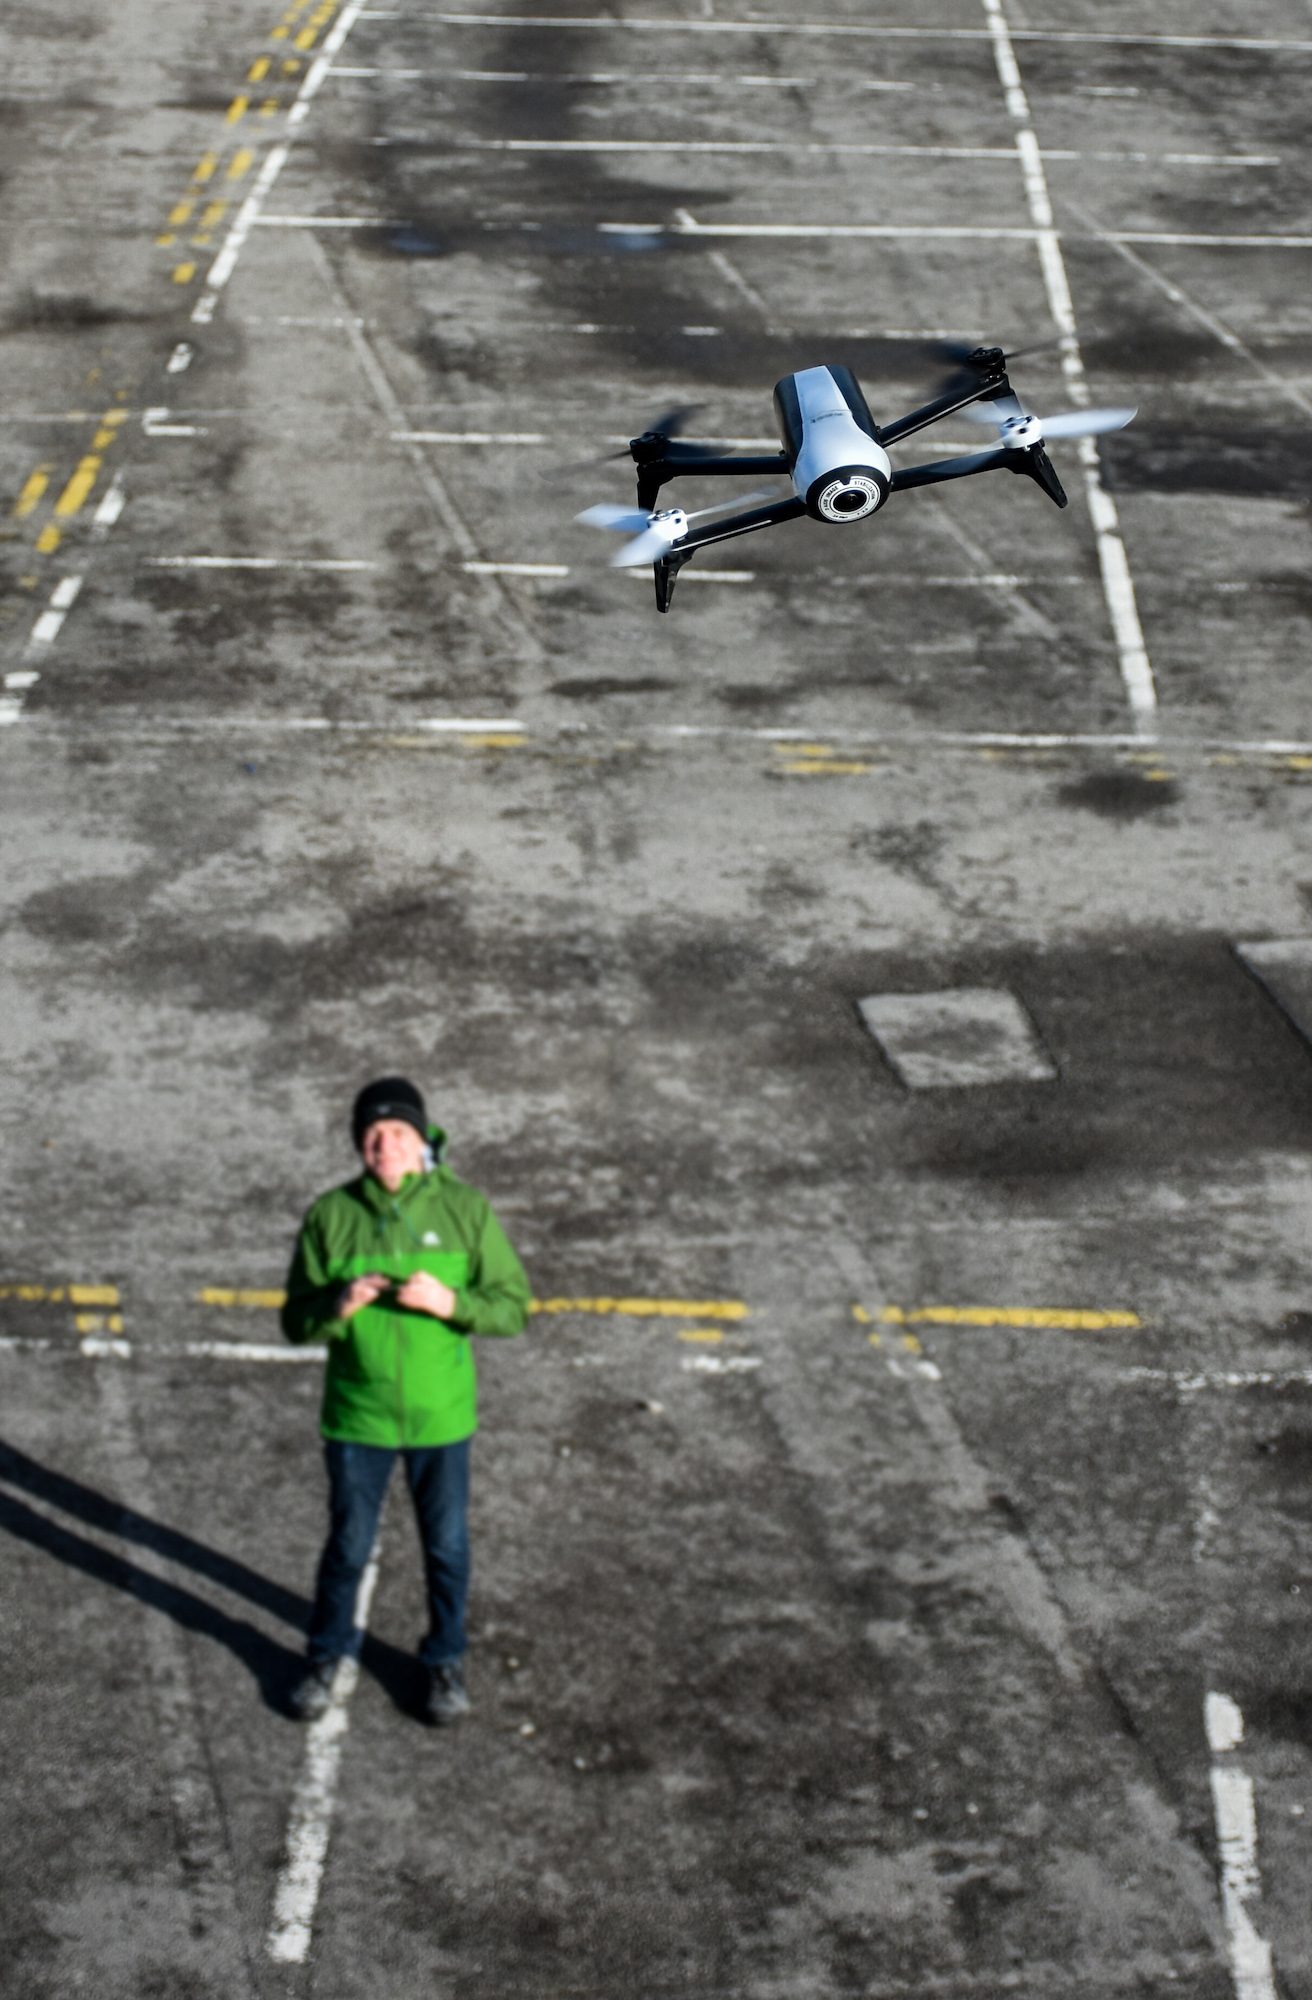 Man in a green coat flying a drone